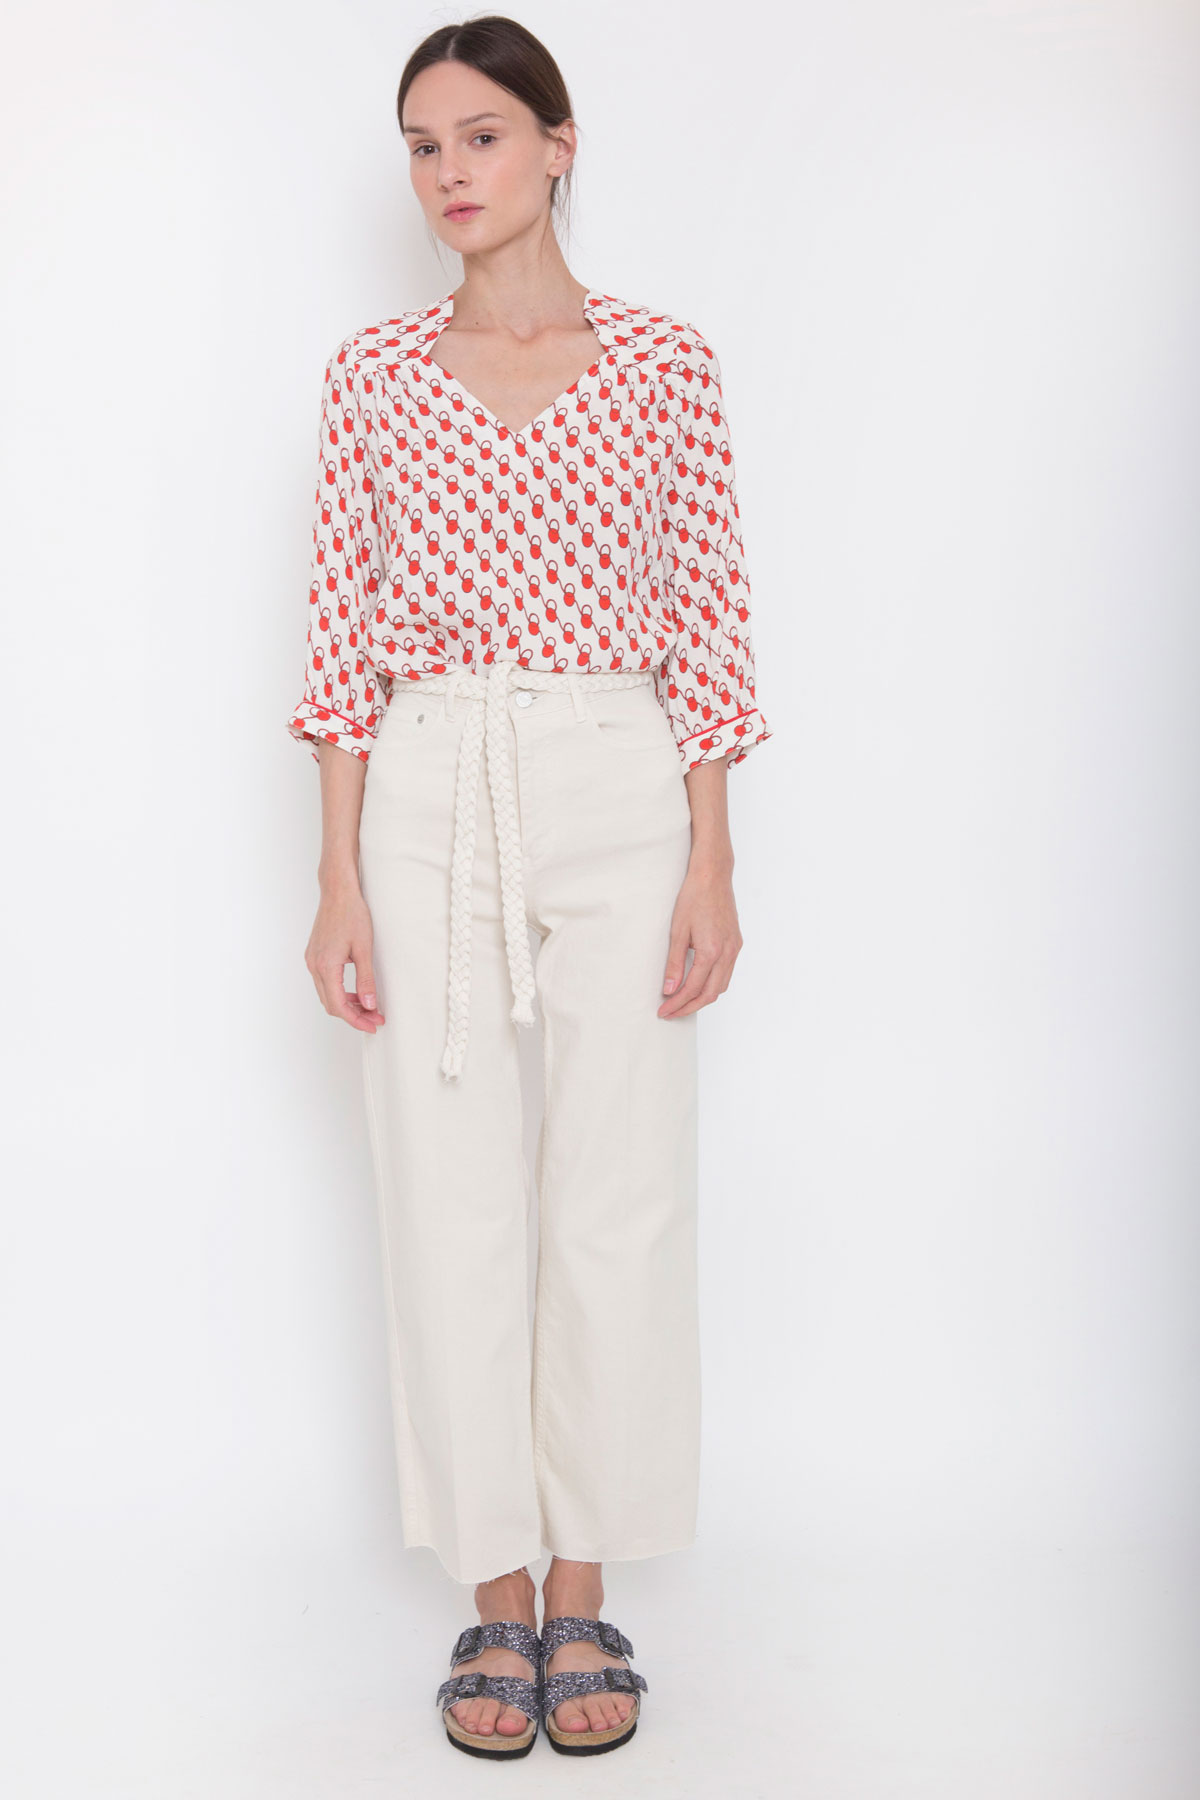 sully-trousers-pants-labdip-cropped-wide-high-waiste-matchboxathens